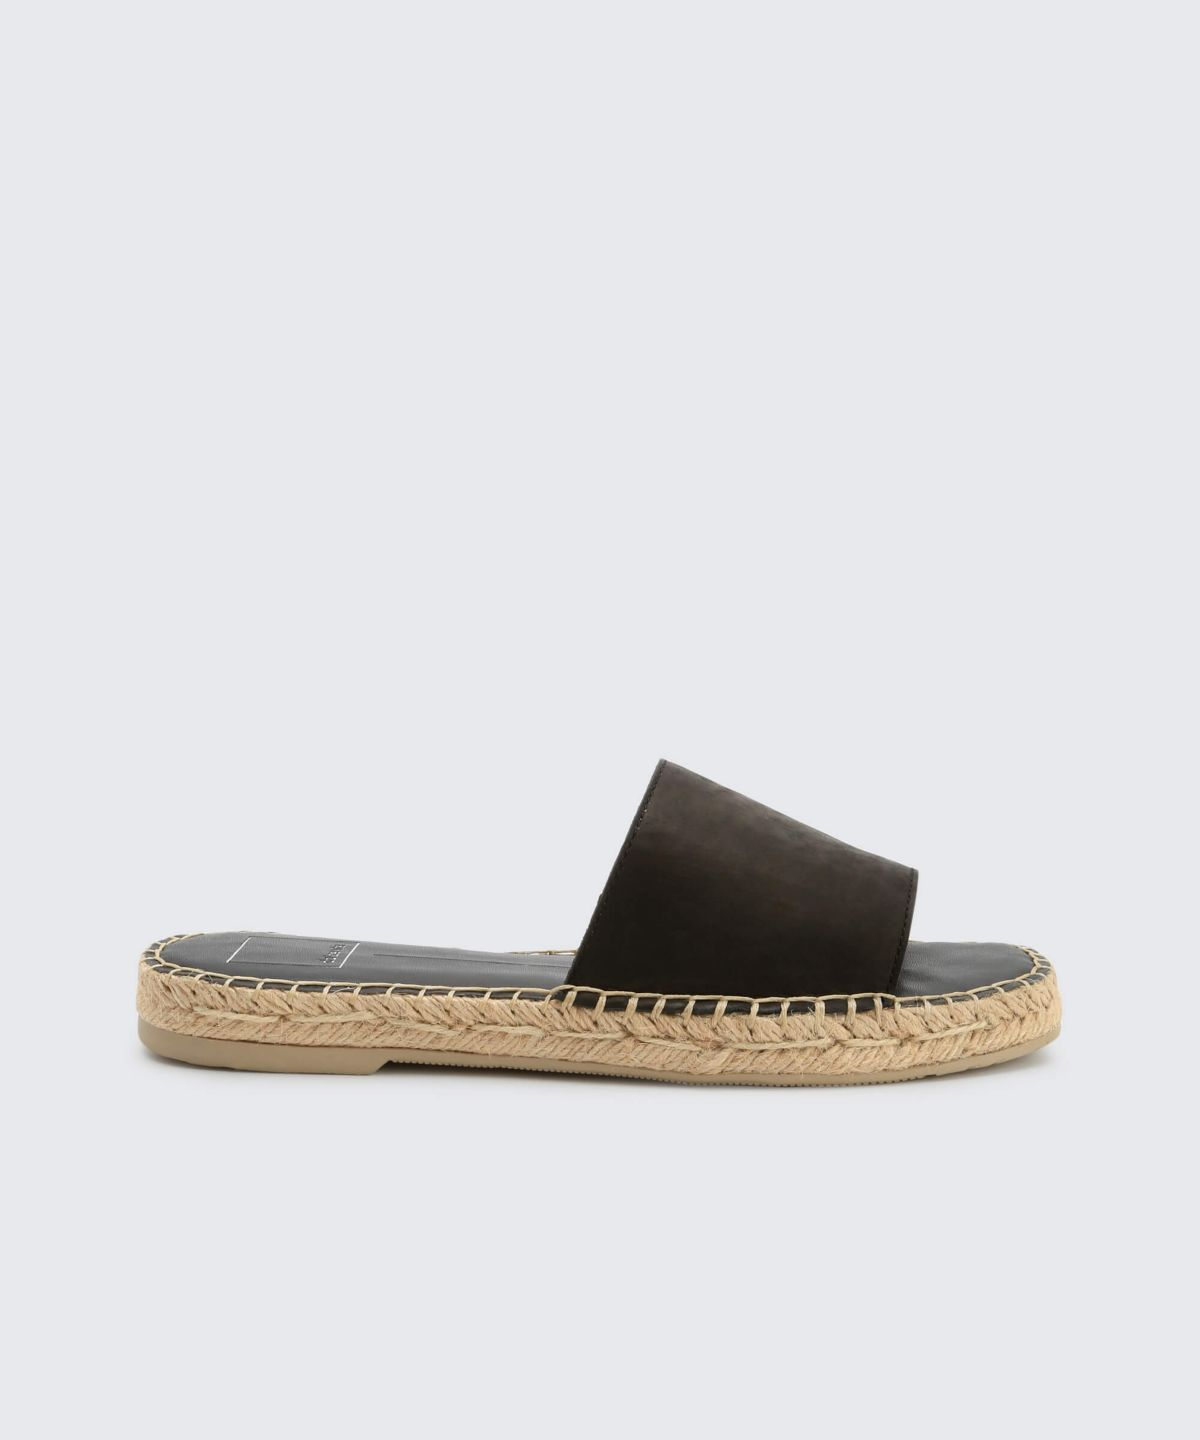 in China for sale Dolce Vita Bobbi espadrillesd sale shopping online manchester great sale ZFNUOQs